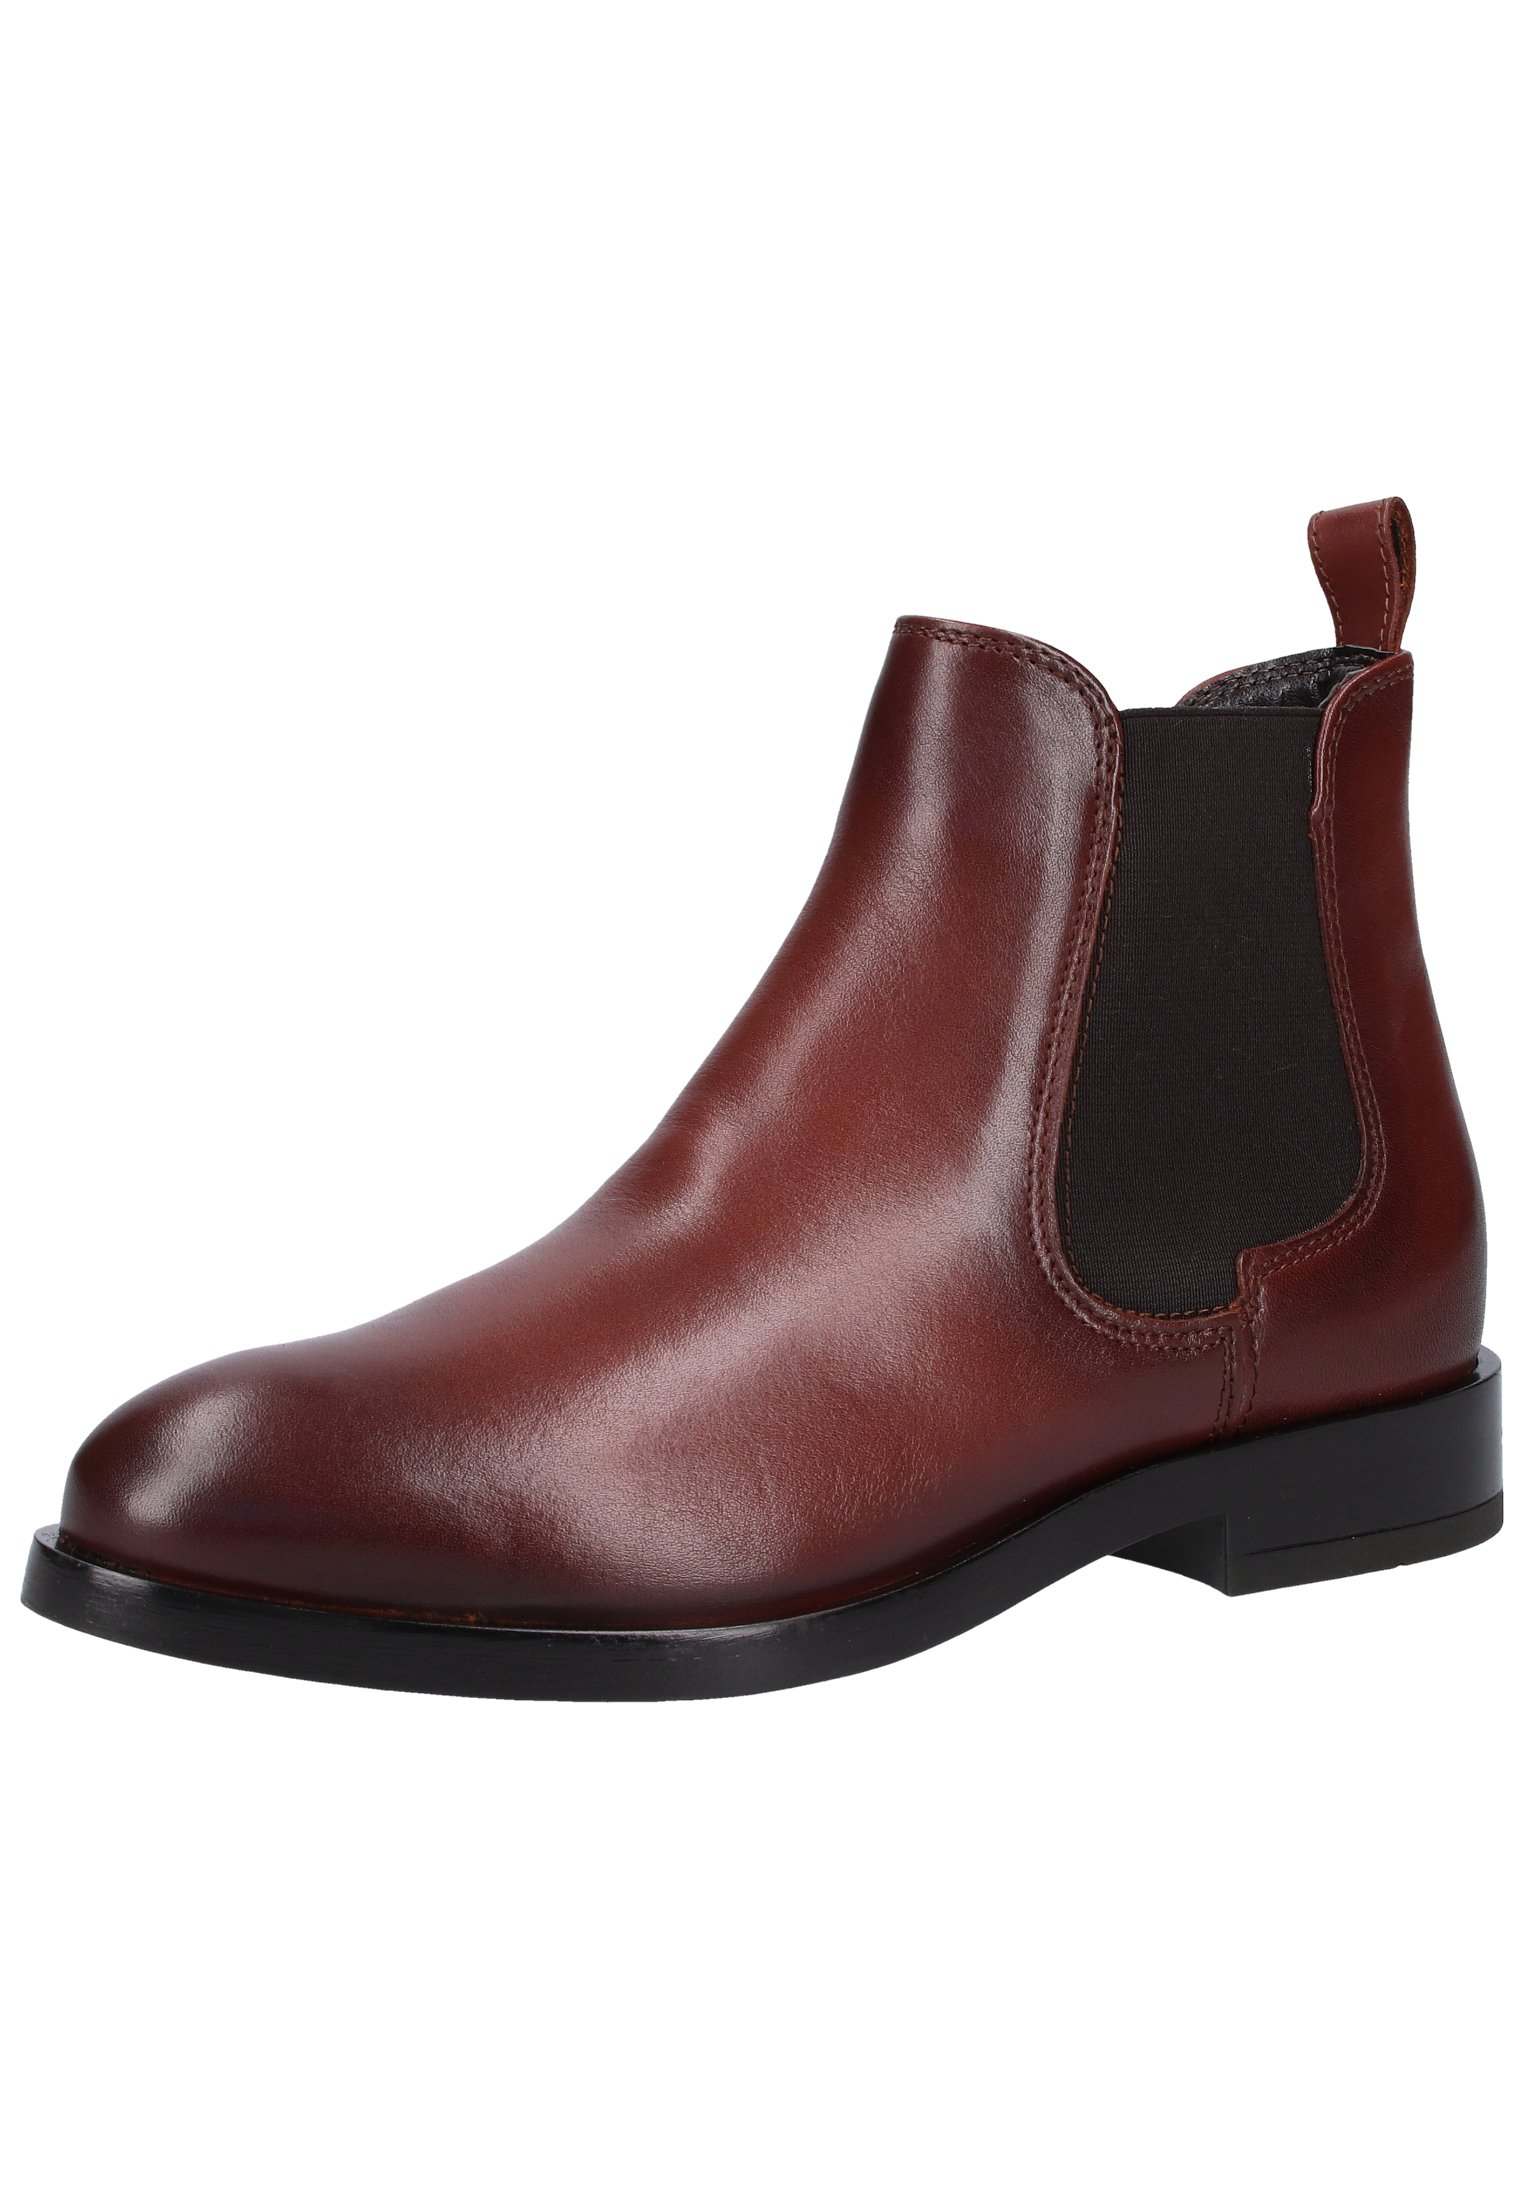 Tamaris Stiefelette brown/braun